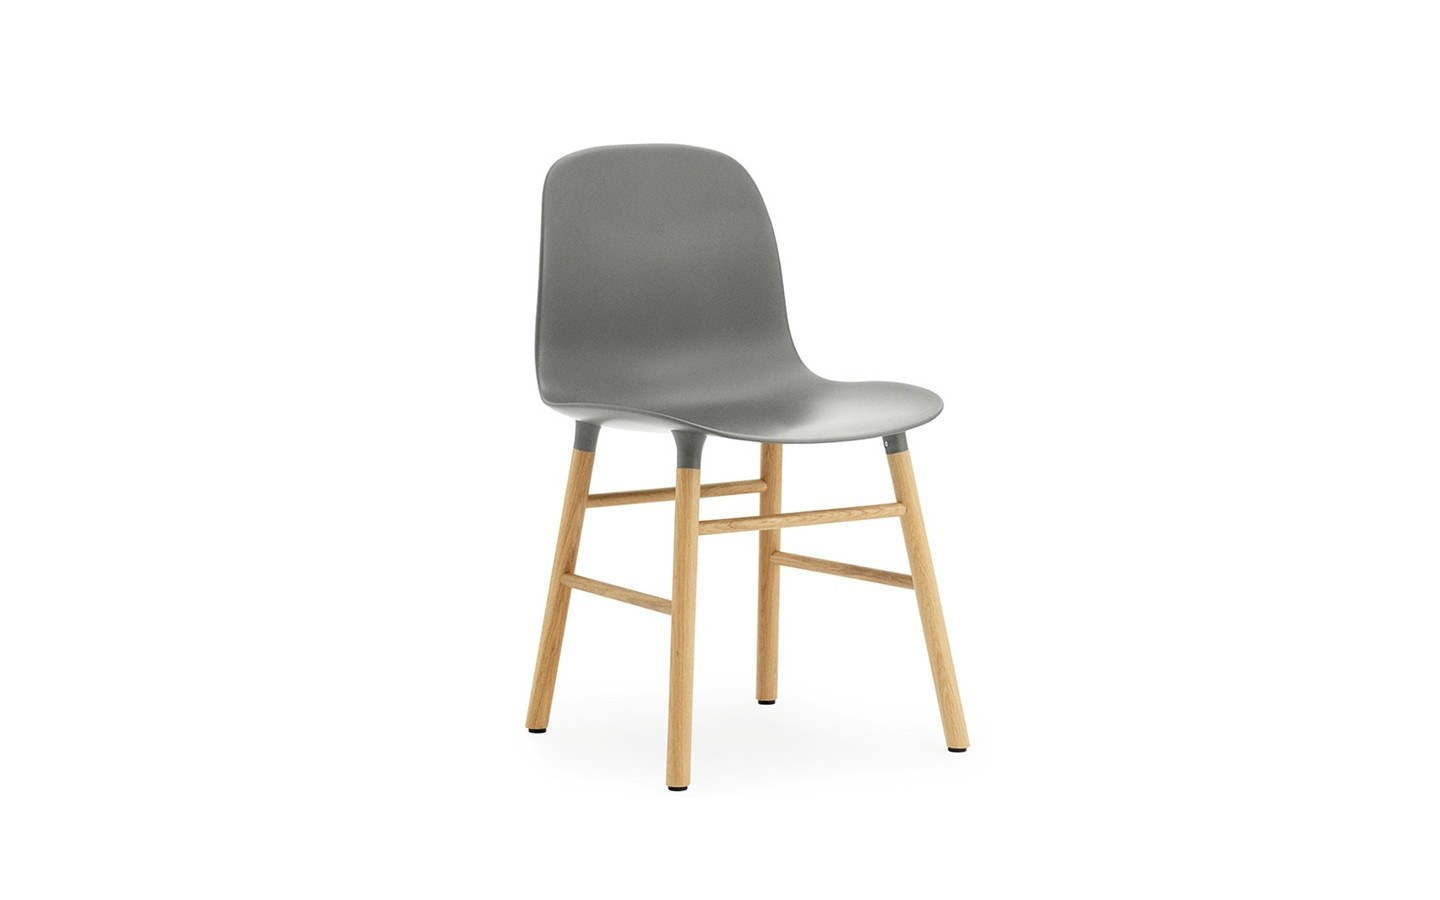 NORMANN COPENHAGEN FORM CHAIR-STEEL BASE - Eclectic Cool  - 5